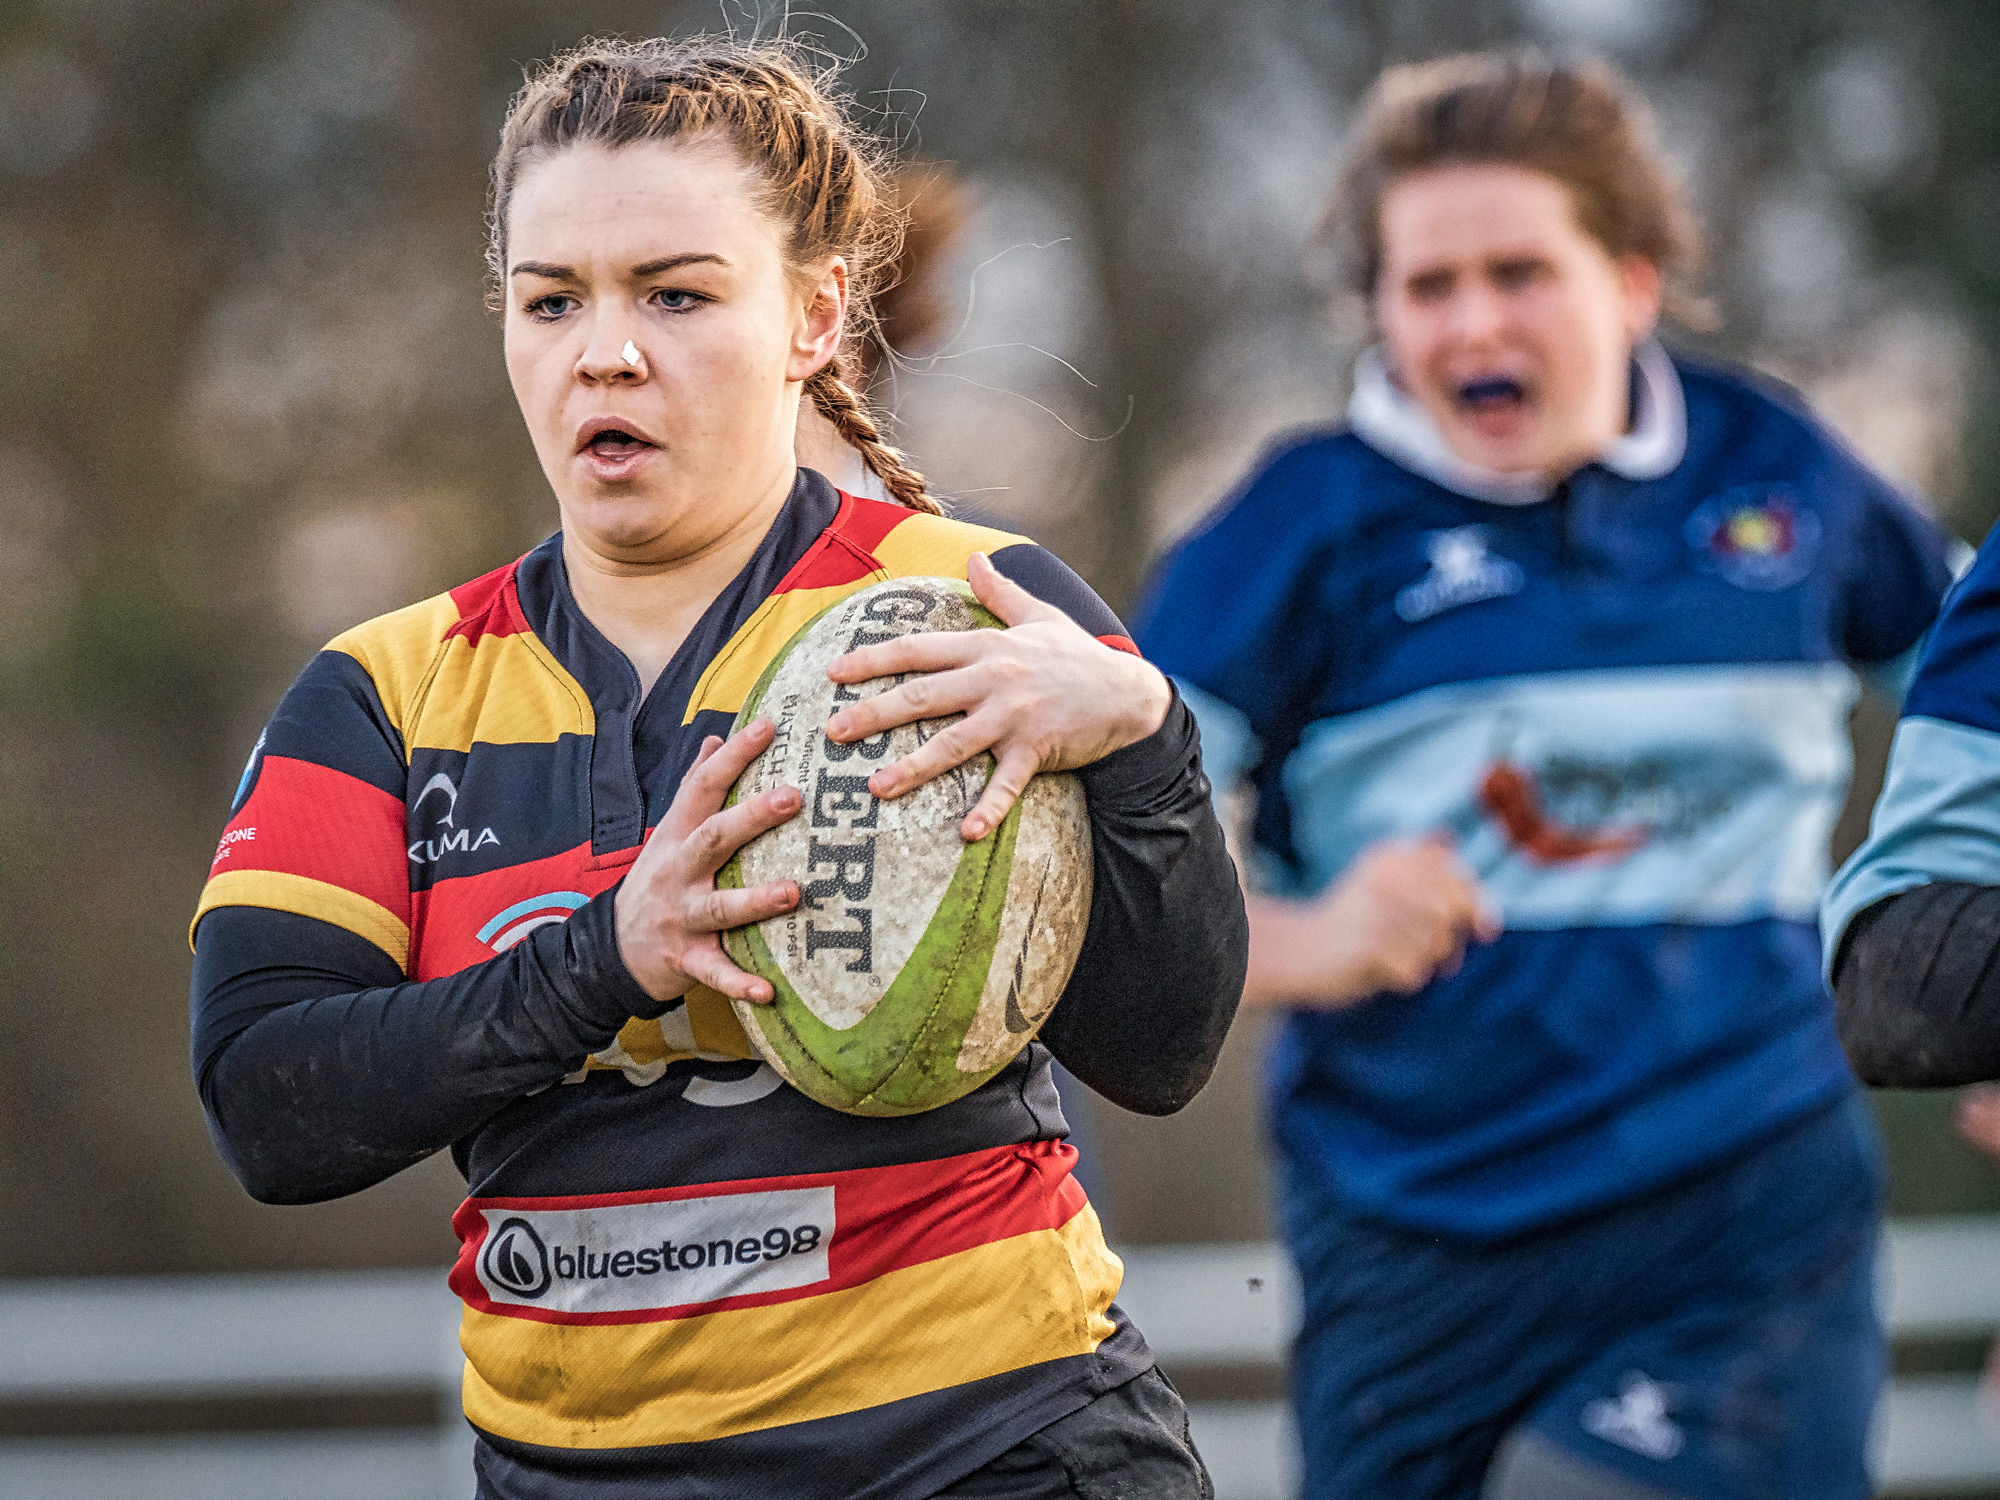 A strong run and tackles evaded leads to a second half try for Sophie Wilson